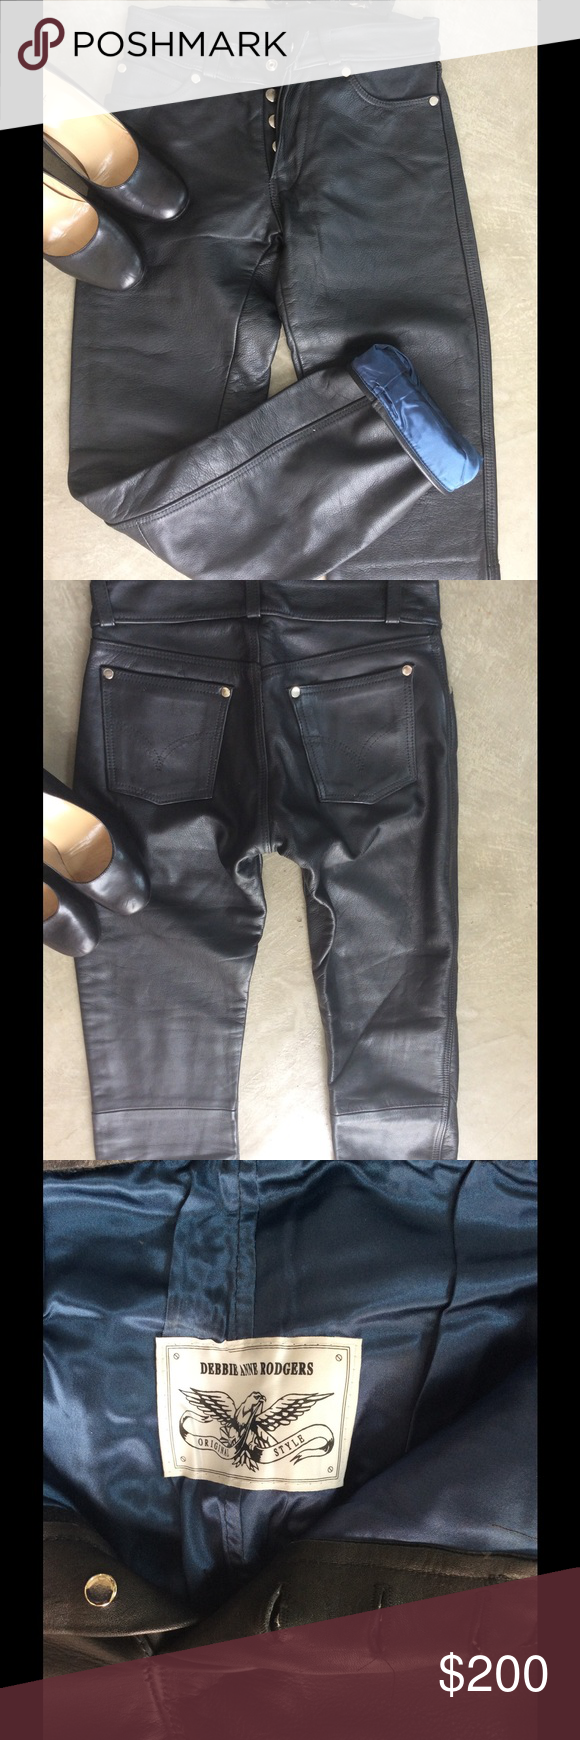 12a34e42b6 Custom made leather jeans. Never worn These are amazing and a total one  off. I had these tailor made for me patterned on a pair of Levi 501 s.